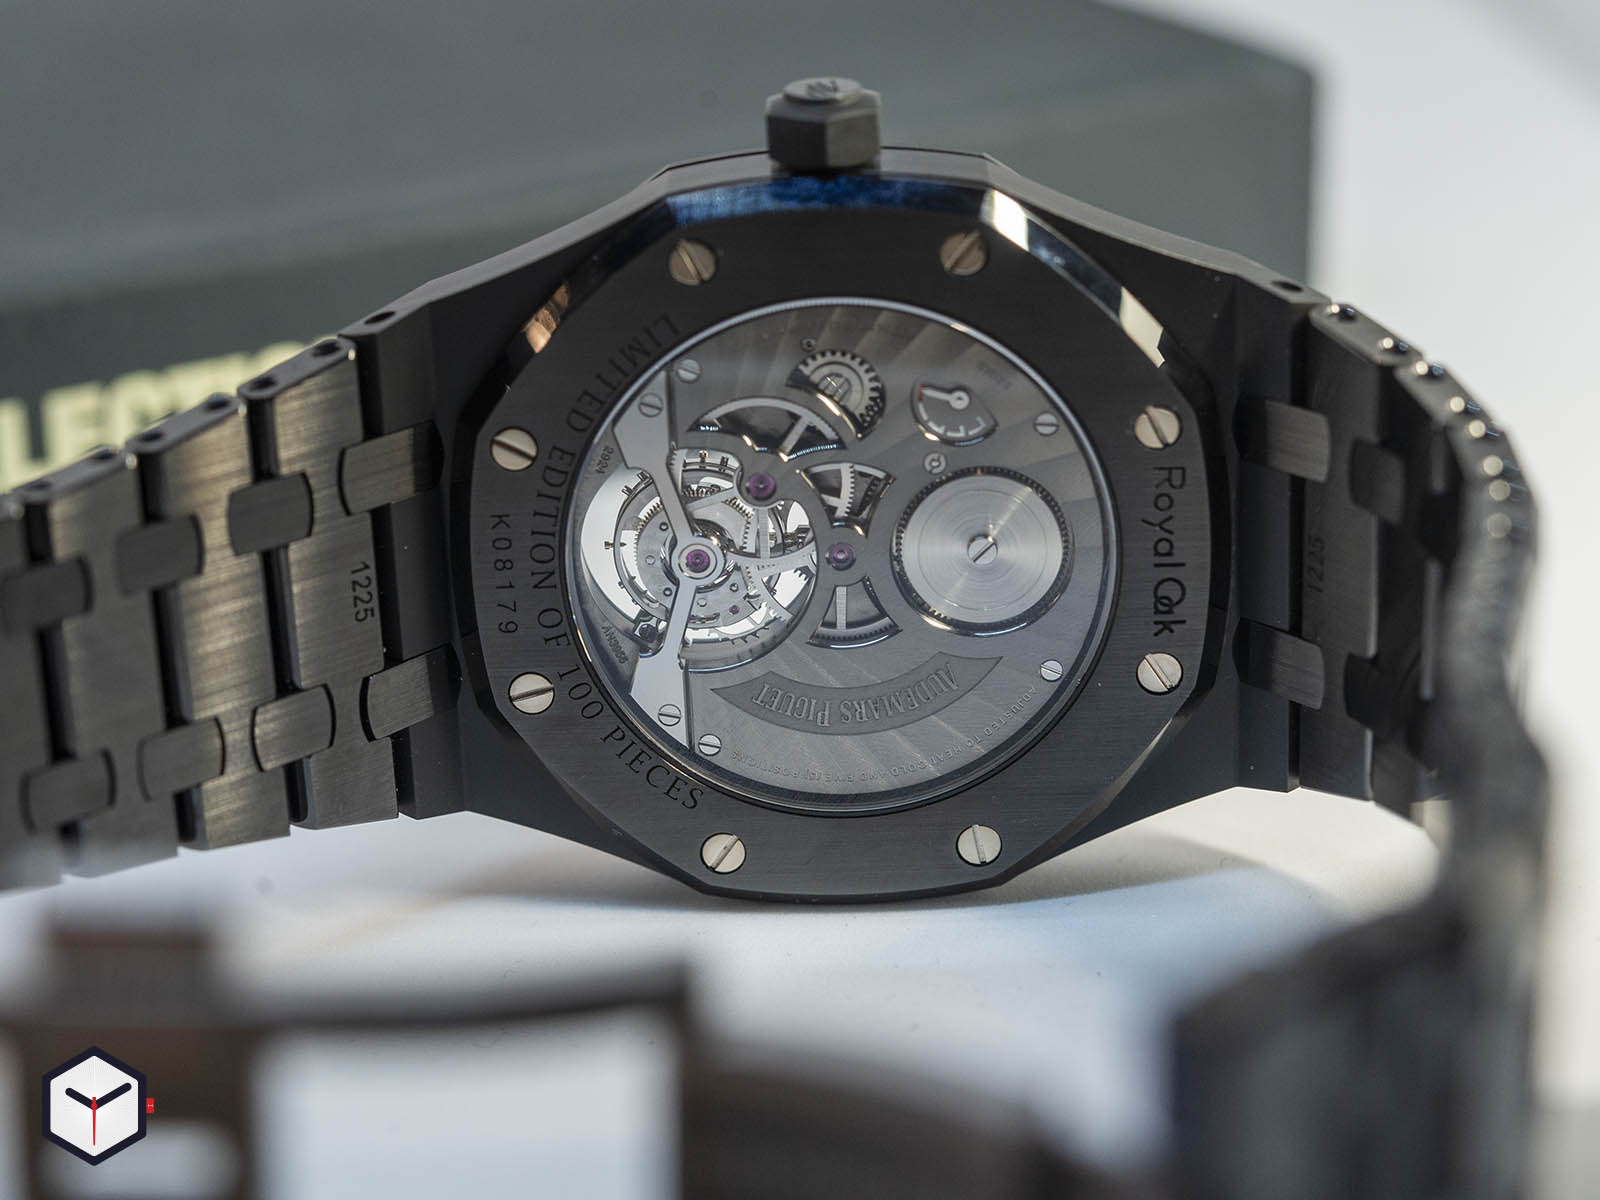 audemars-piguet-royal-oak-tourbillon-extra-thin-black-ceramic-6.jpg